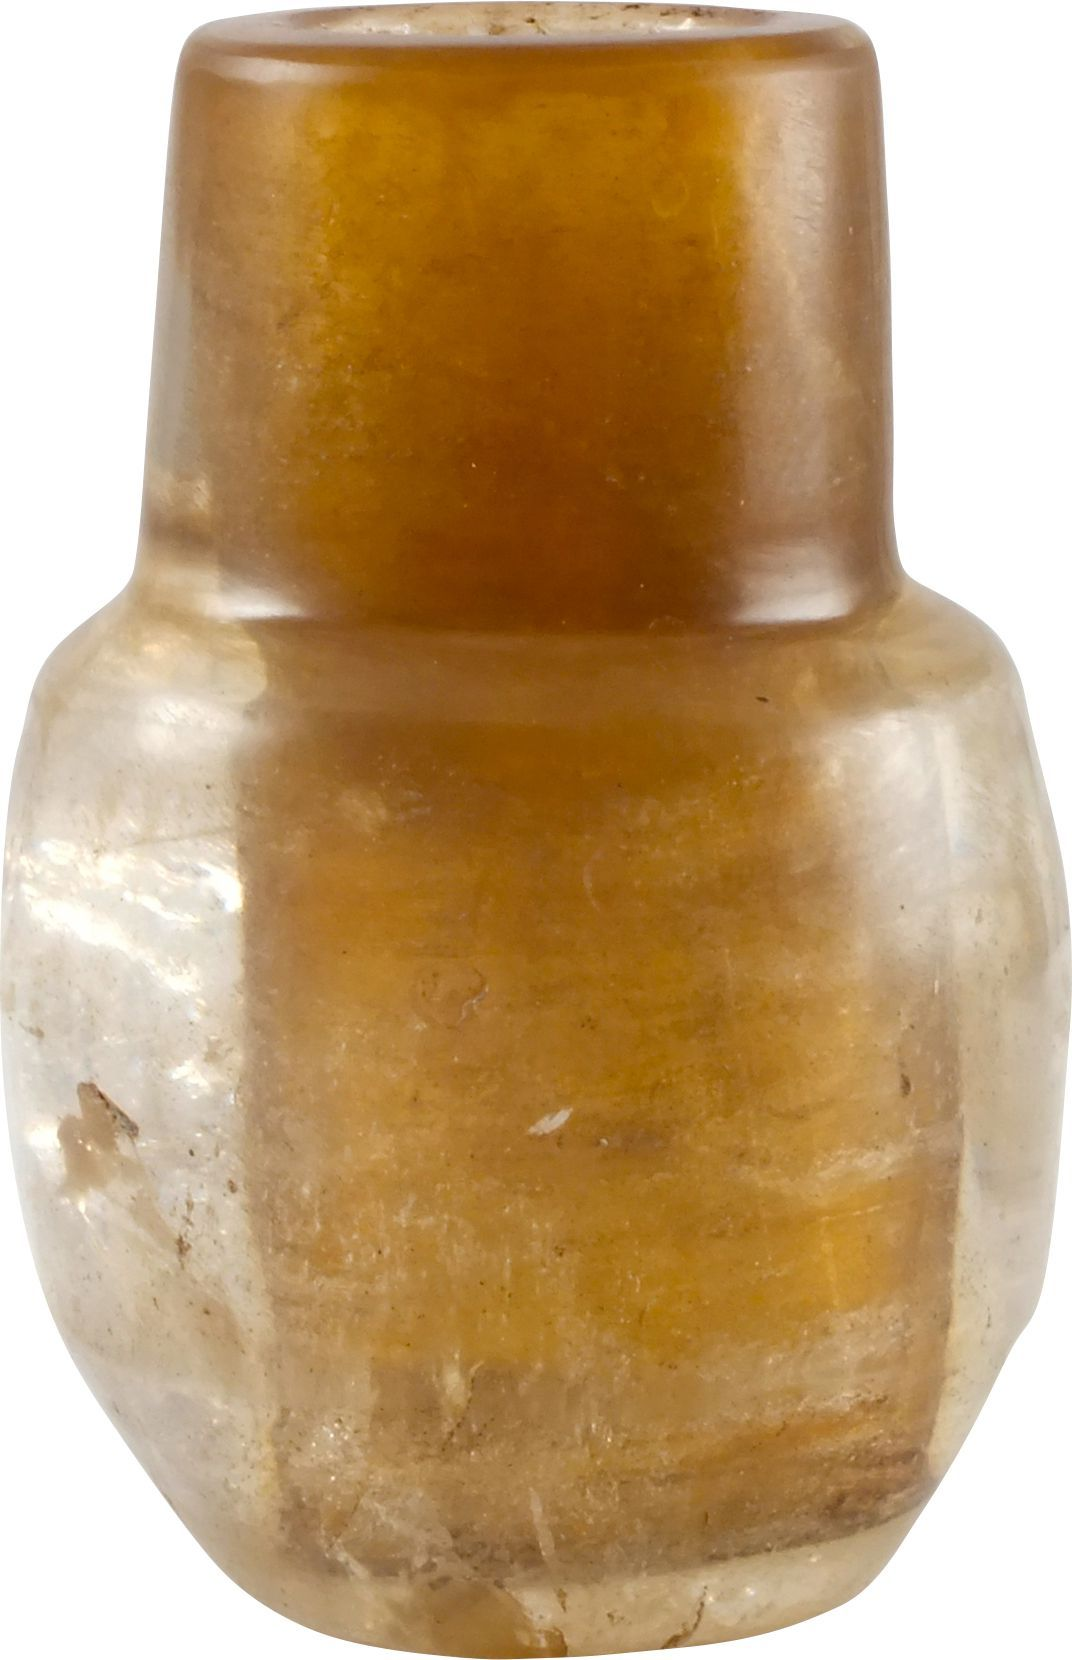 Egyptian Rock Crystal Makeup Jar C.2700-2055 Bc - Product